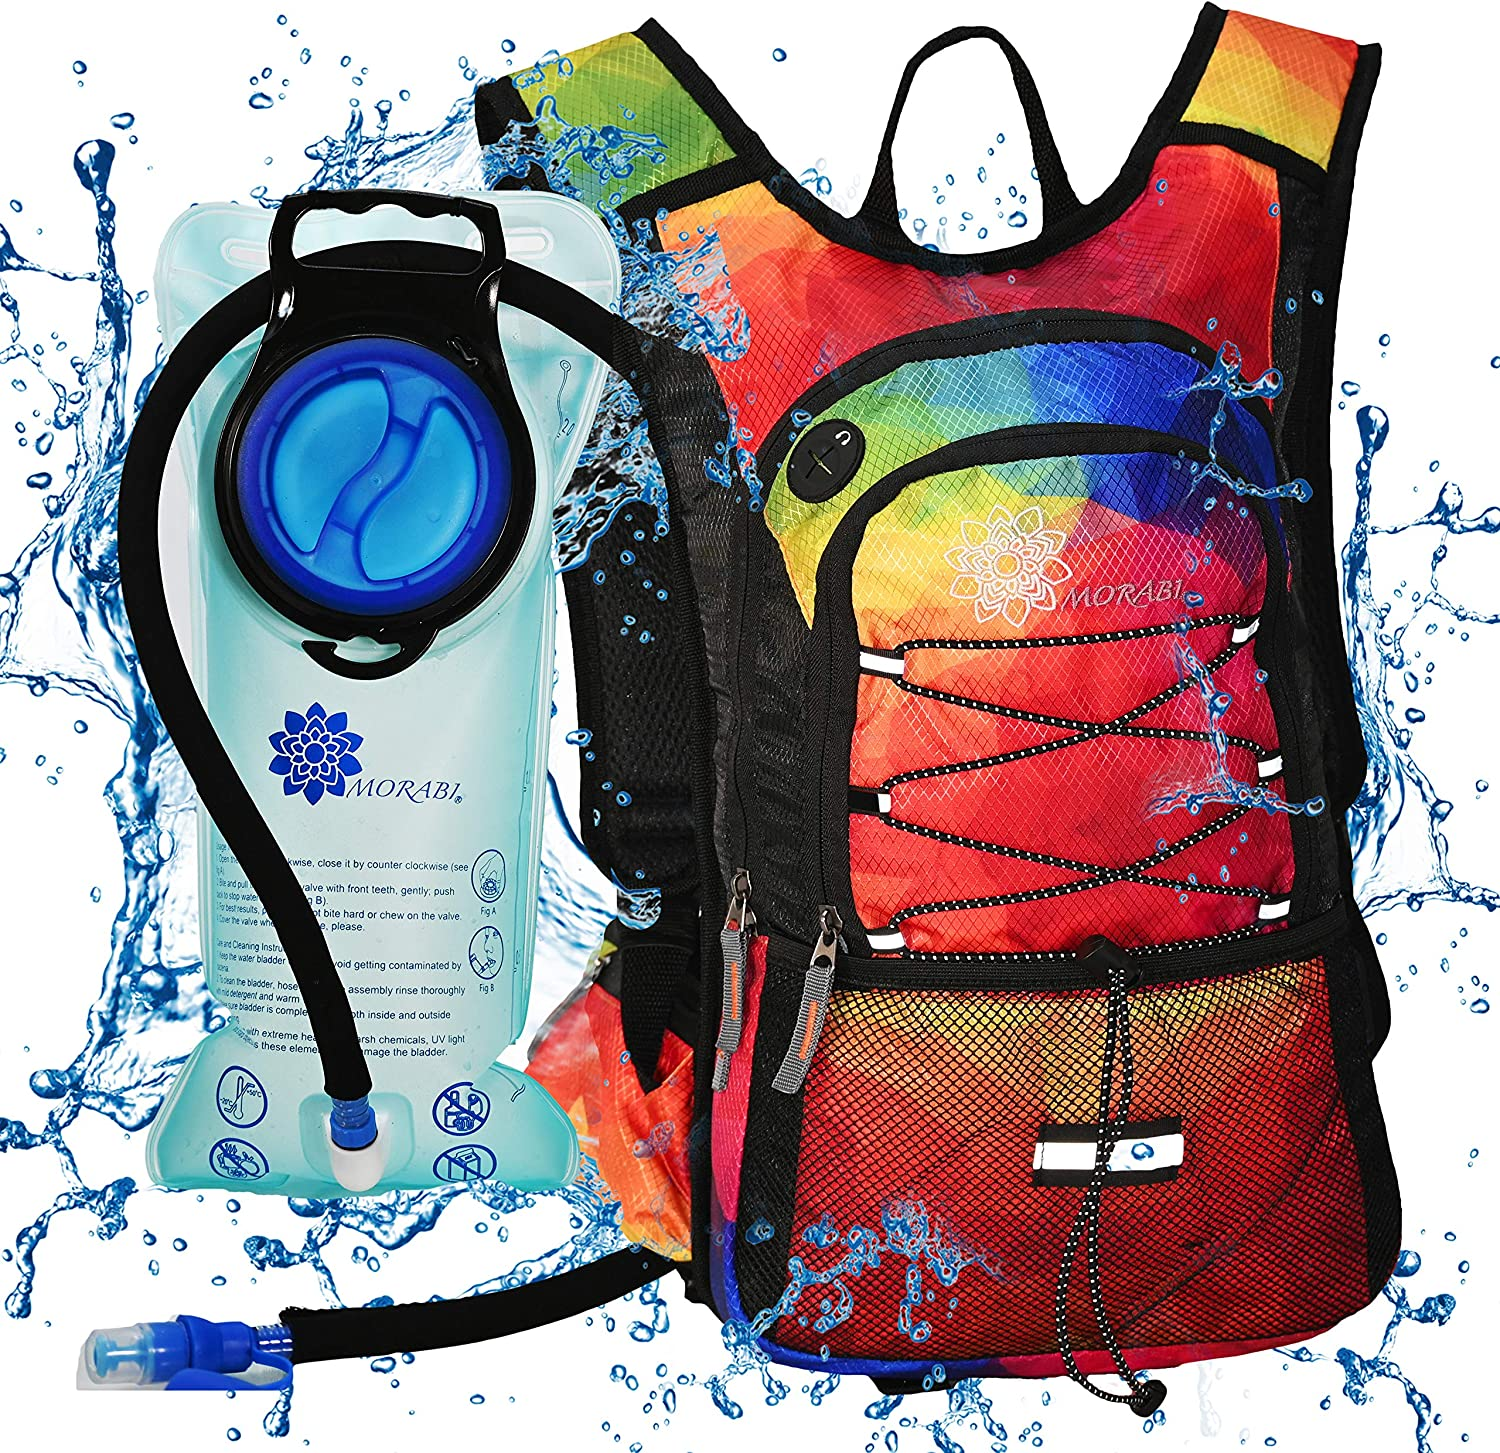 MORABI Insulated We OFFer at cheap prices Hydration Surprise price Backpack with BPA Free Water 2L Blad